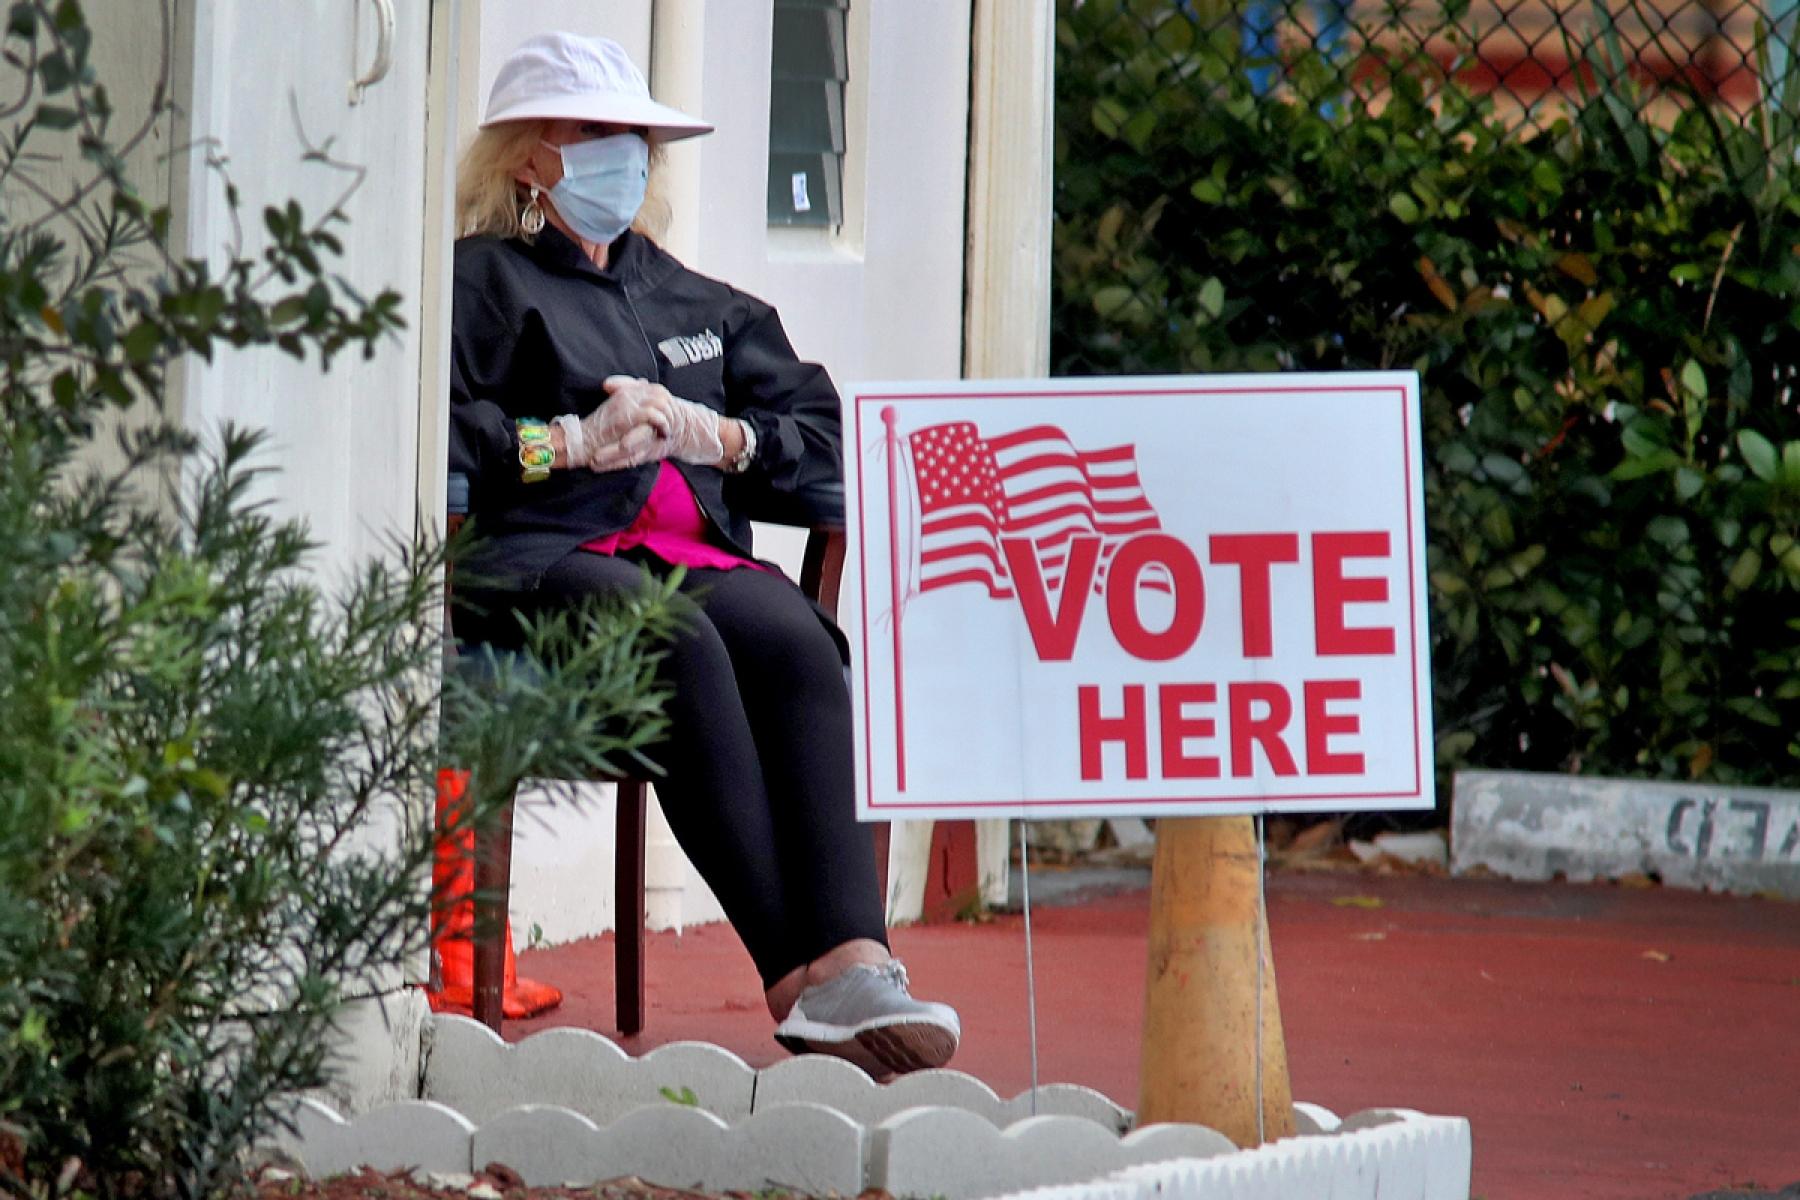 A poll worker at the First Baptist Church voting site in Hollywood, Florida, wears a protective mask and gloves on Tuesday, March 17, 2020. Voting in Florida's presidential primary is proceeding despite the novel coronavirus.